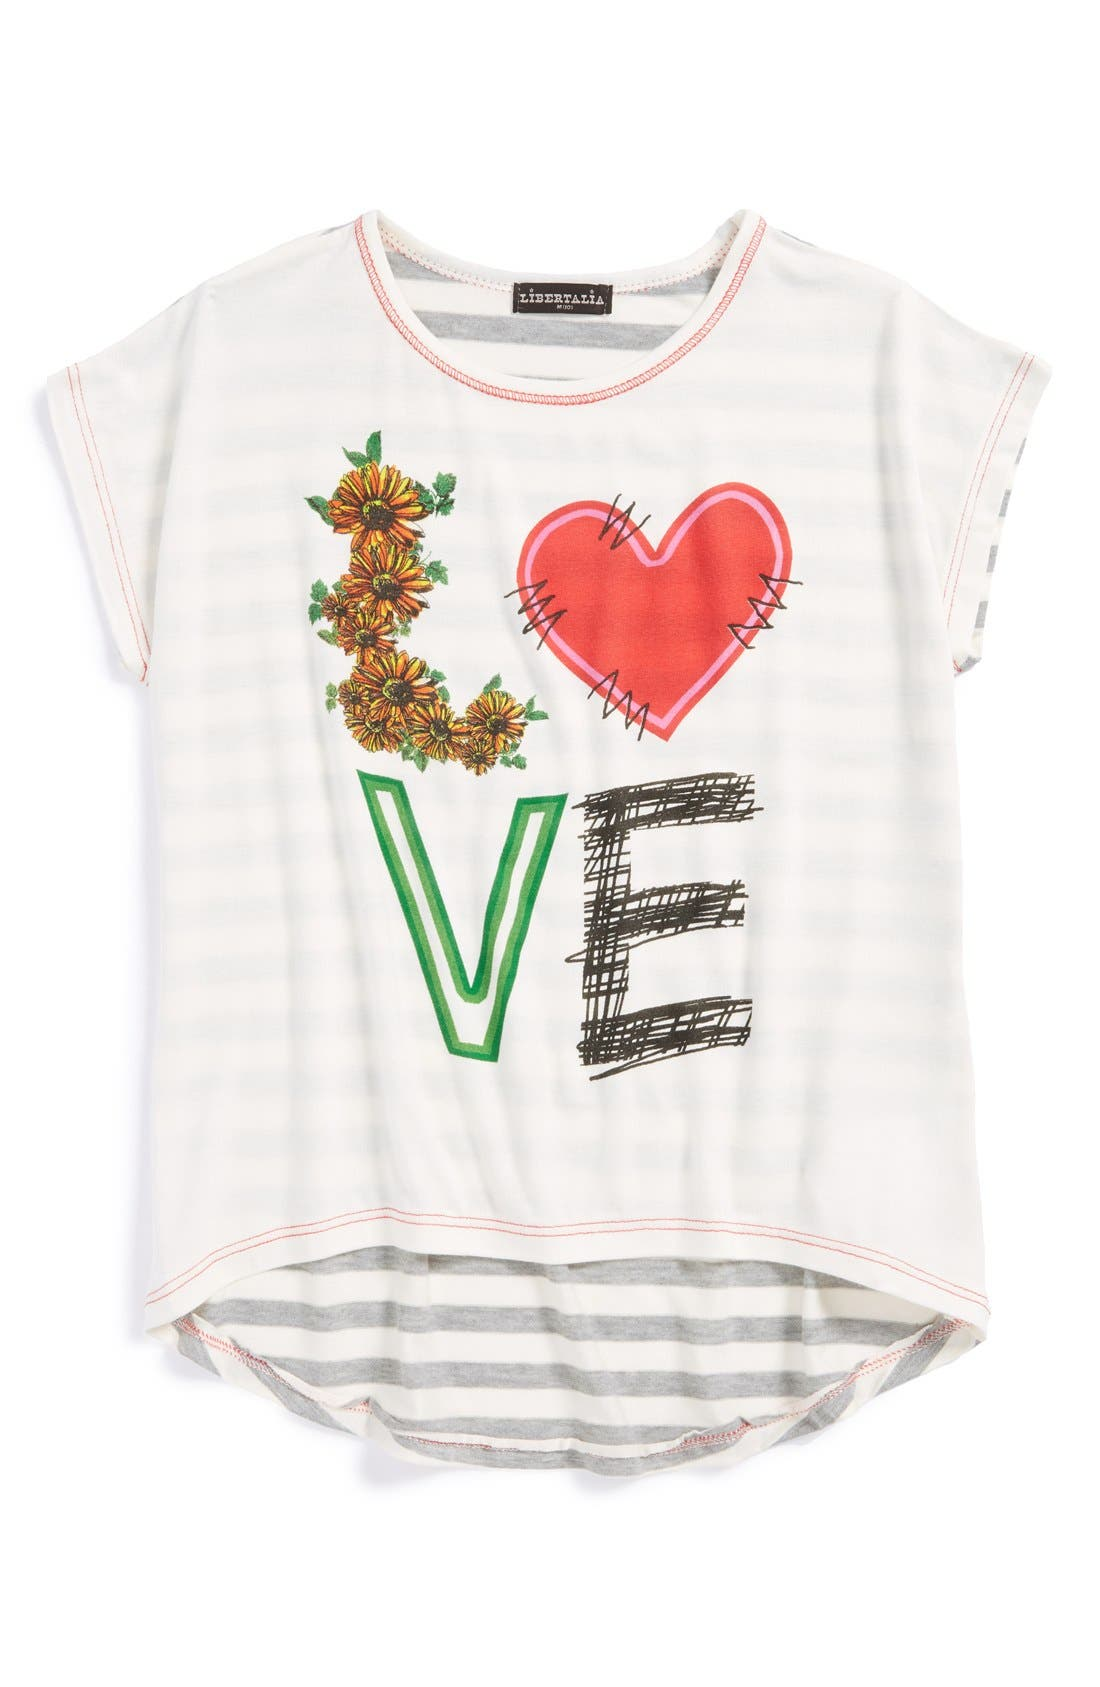 Main Image - Libertalia 'Love' High/Low Tee (Big Girls)